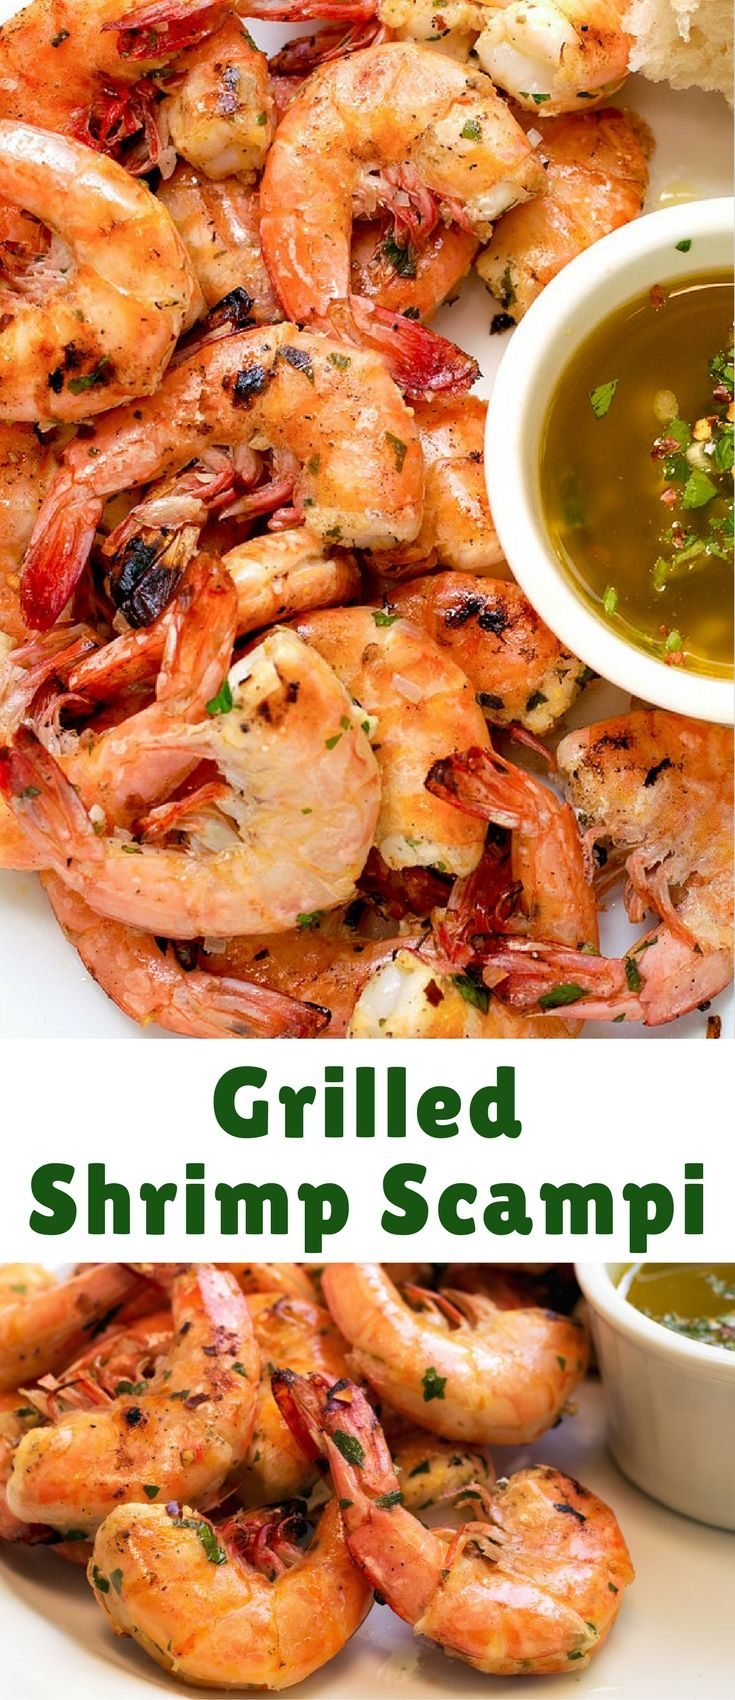 Lightly-charred shells gave way to luscious, marinated shrimp, served with warm,…